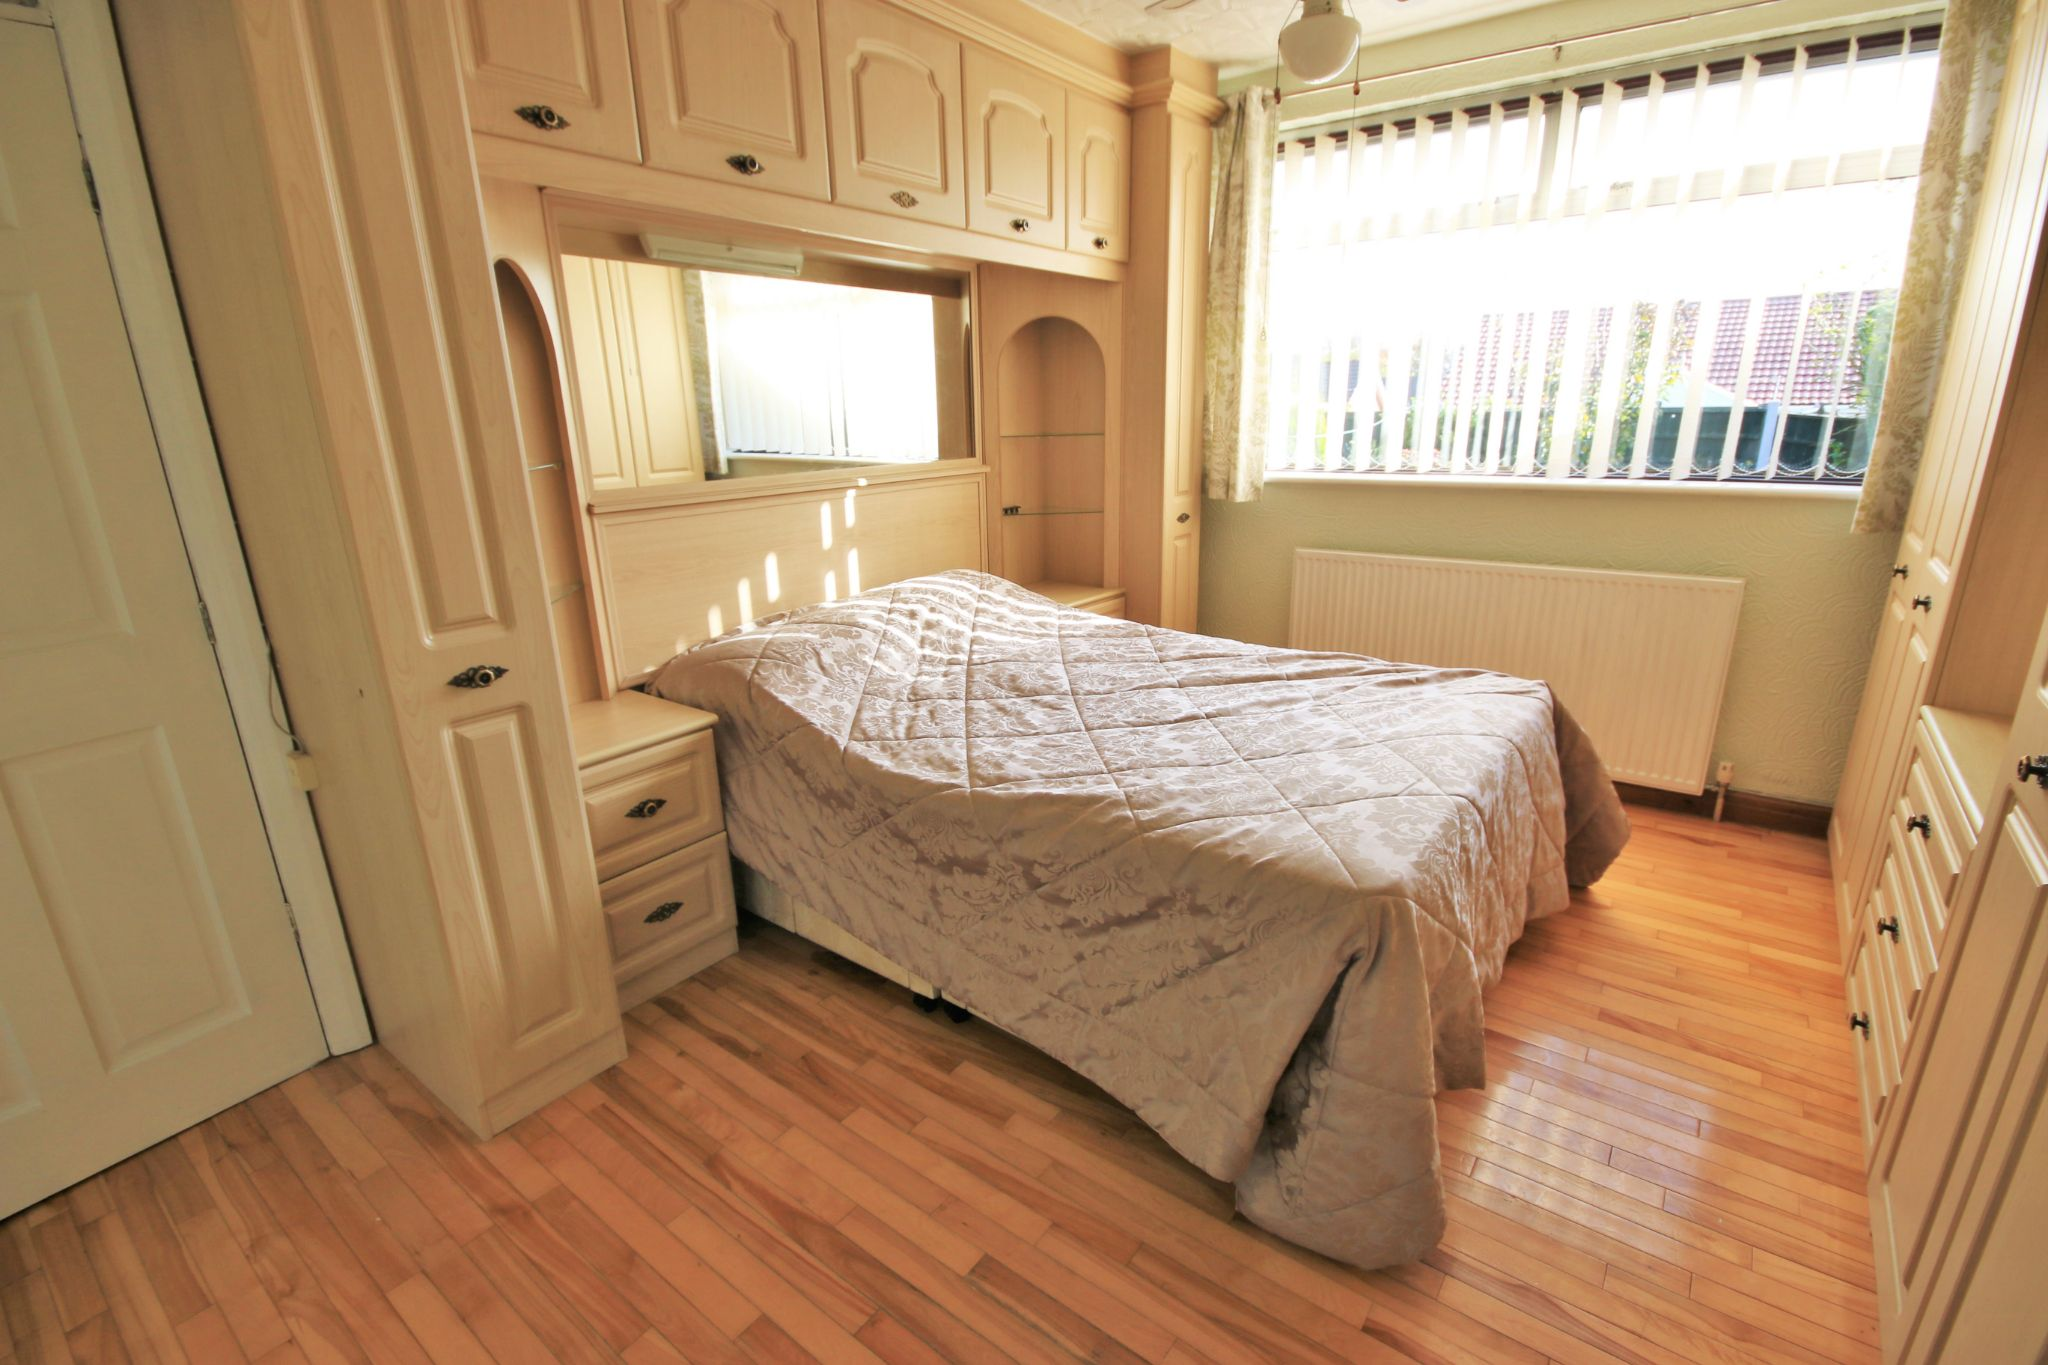 4 Bedroom Semi-detached Bungalow For Sale - Photograph 4